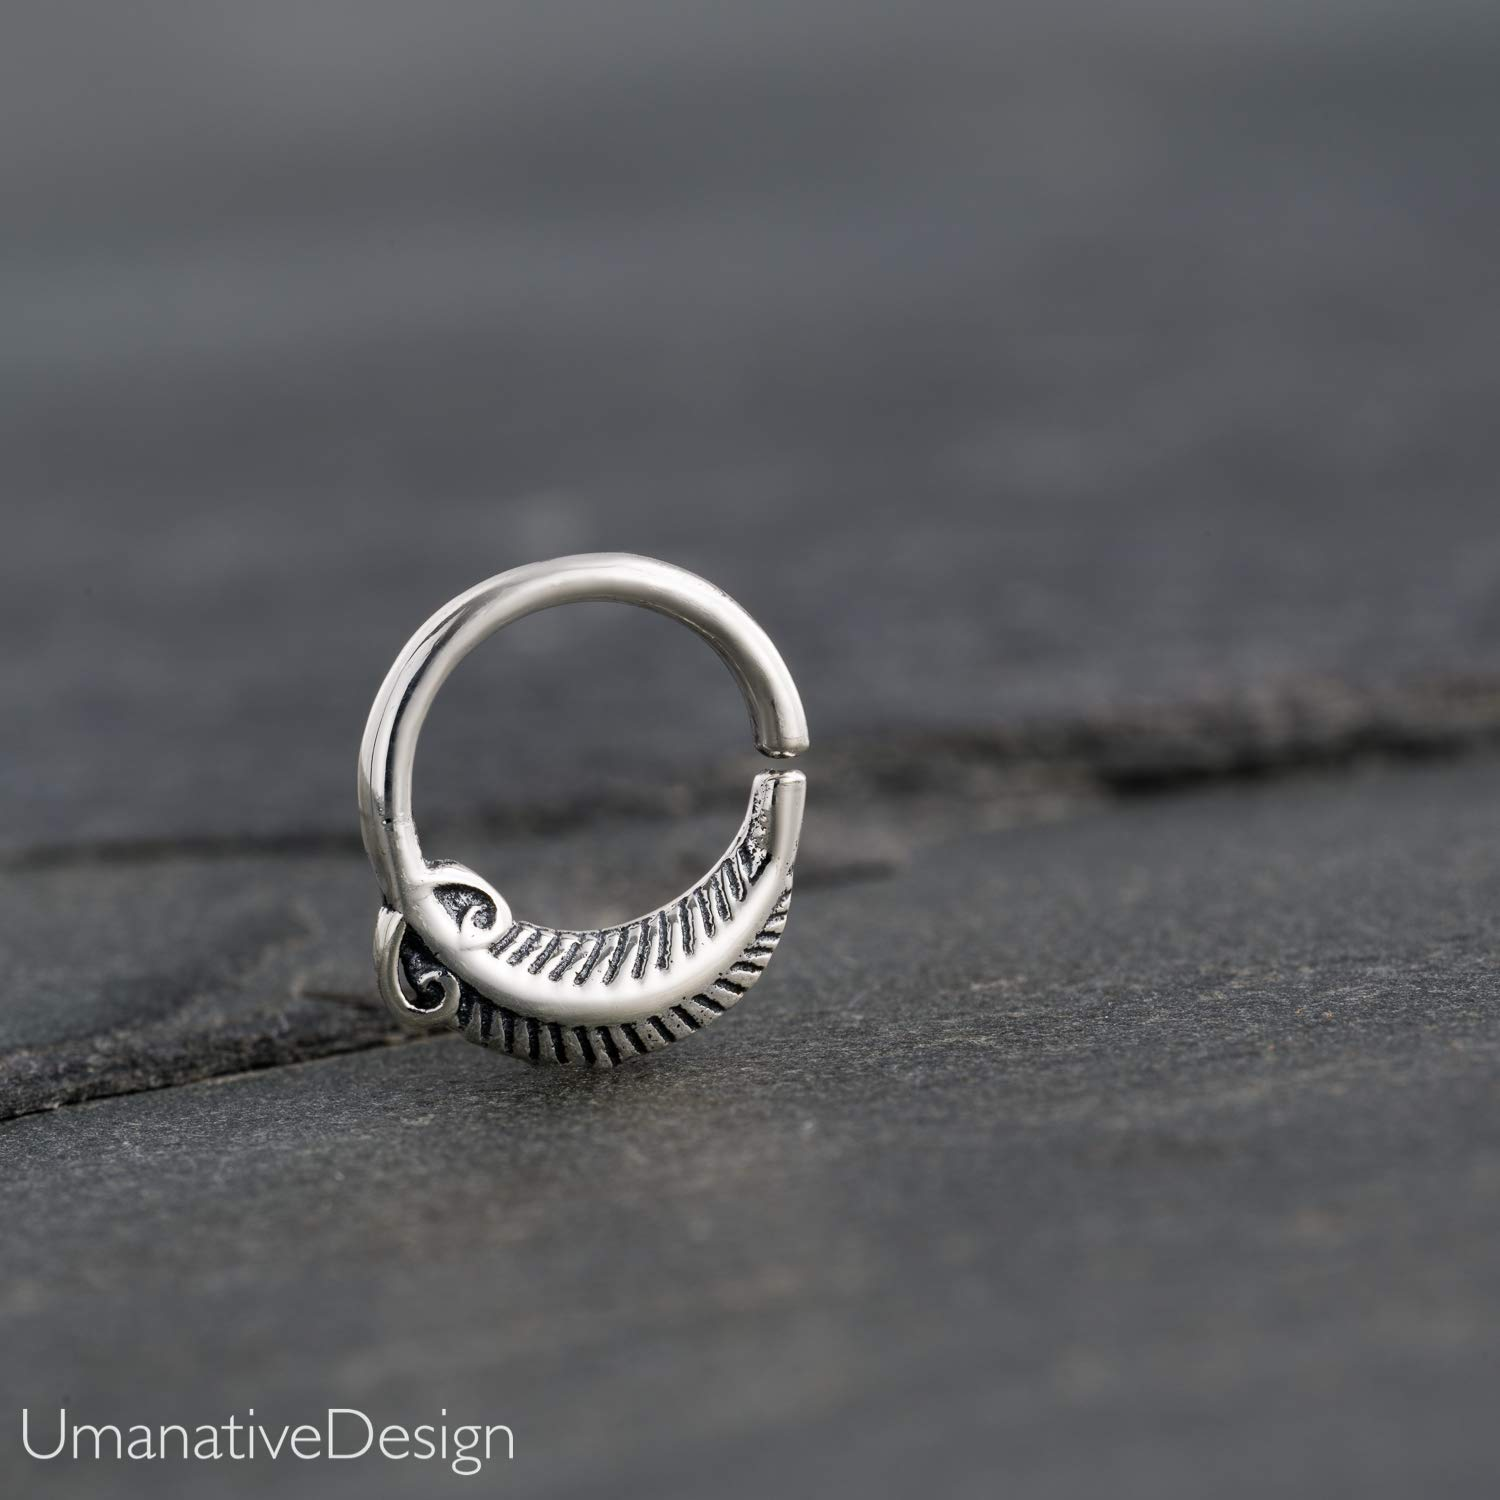 Feather Shaped Earlobes Helix Dainty Sterling Silver Nose Hoop Piercing Earring Unique Handmade Piercing Jewelry Also Fits Tragus 18g Indian Septum Ring